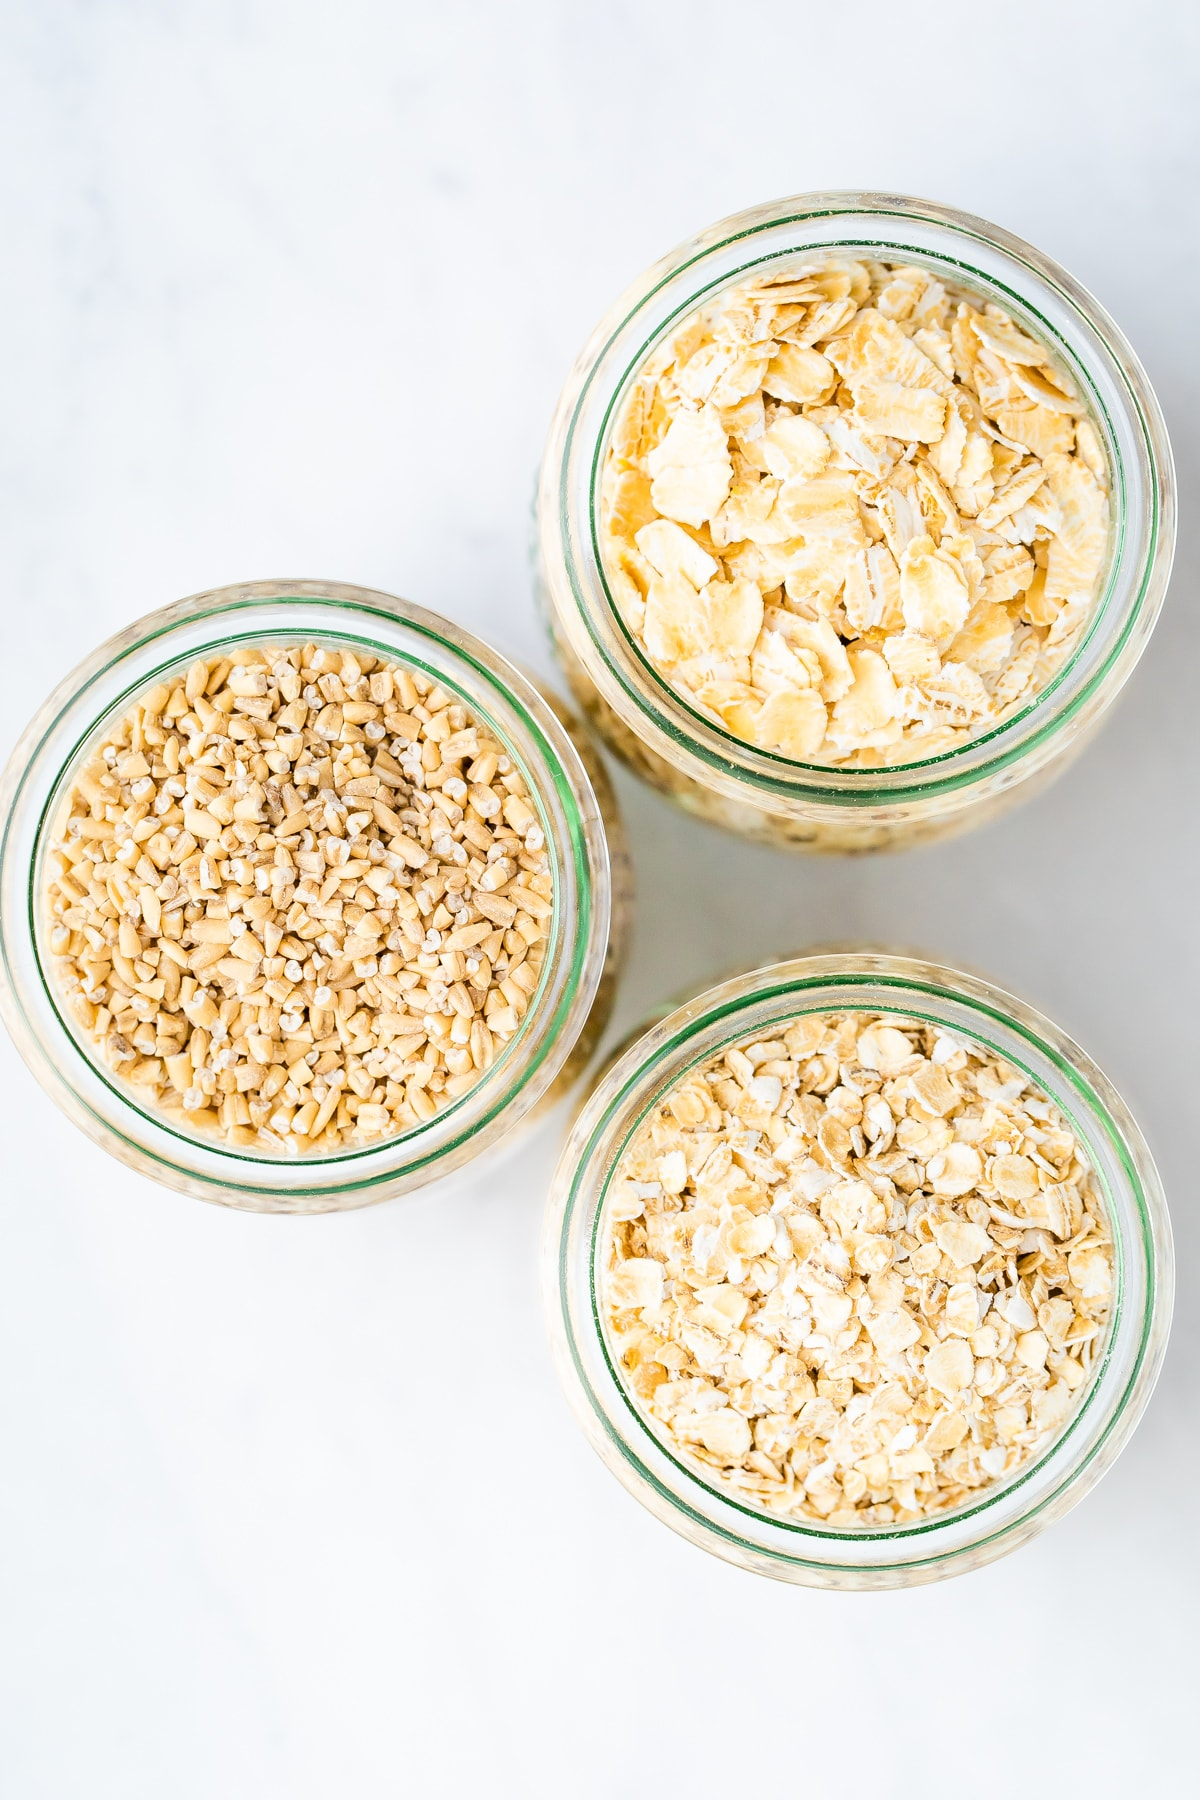 Three jars of different kinds of oats: steel cut oats, rolled oats and quick oats.